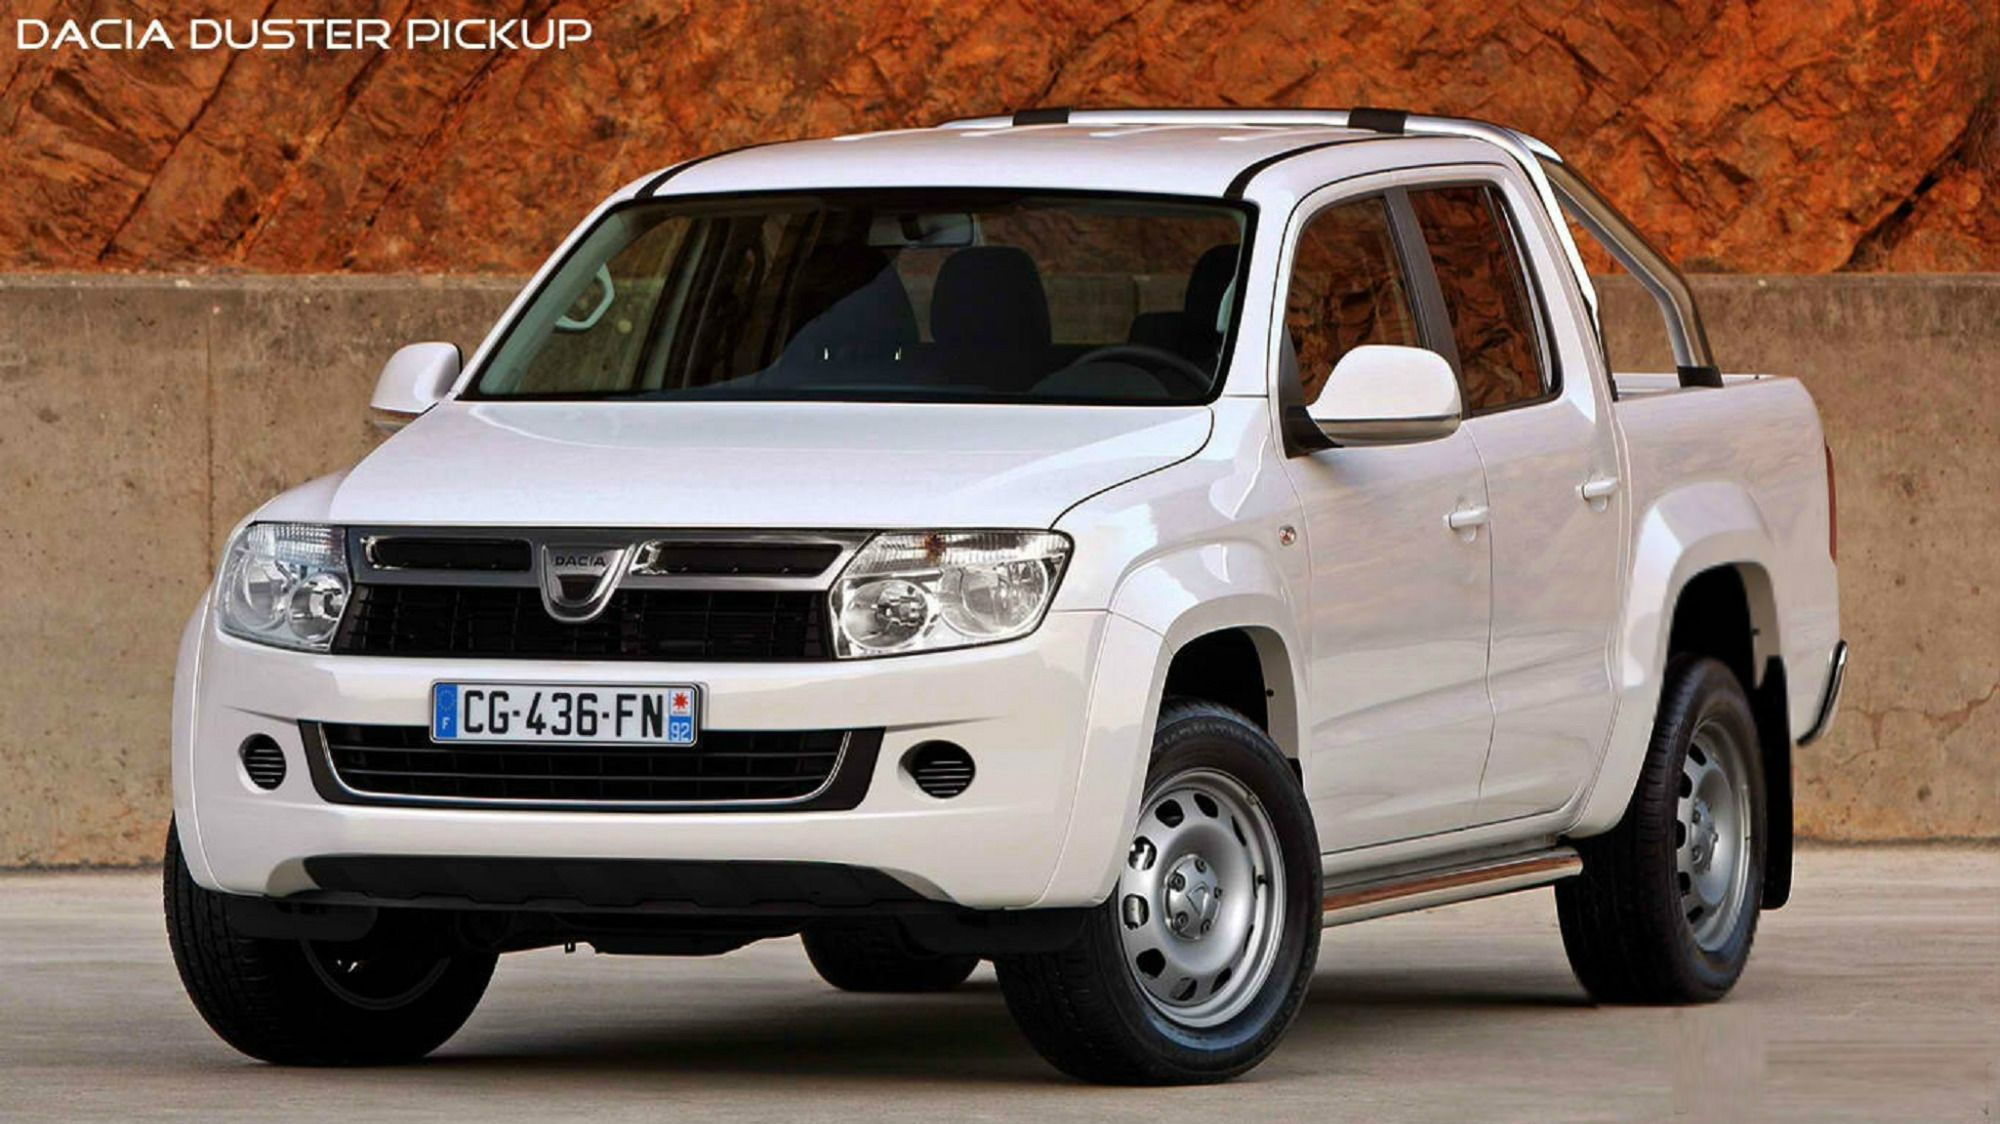 dacia duster pick up dacia duster renault oroch alaskan pick up pinterest. Black Bedroom Furniture Sets. Home Design Ideas